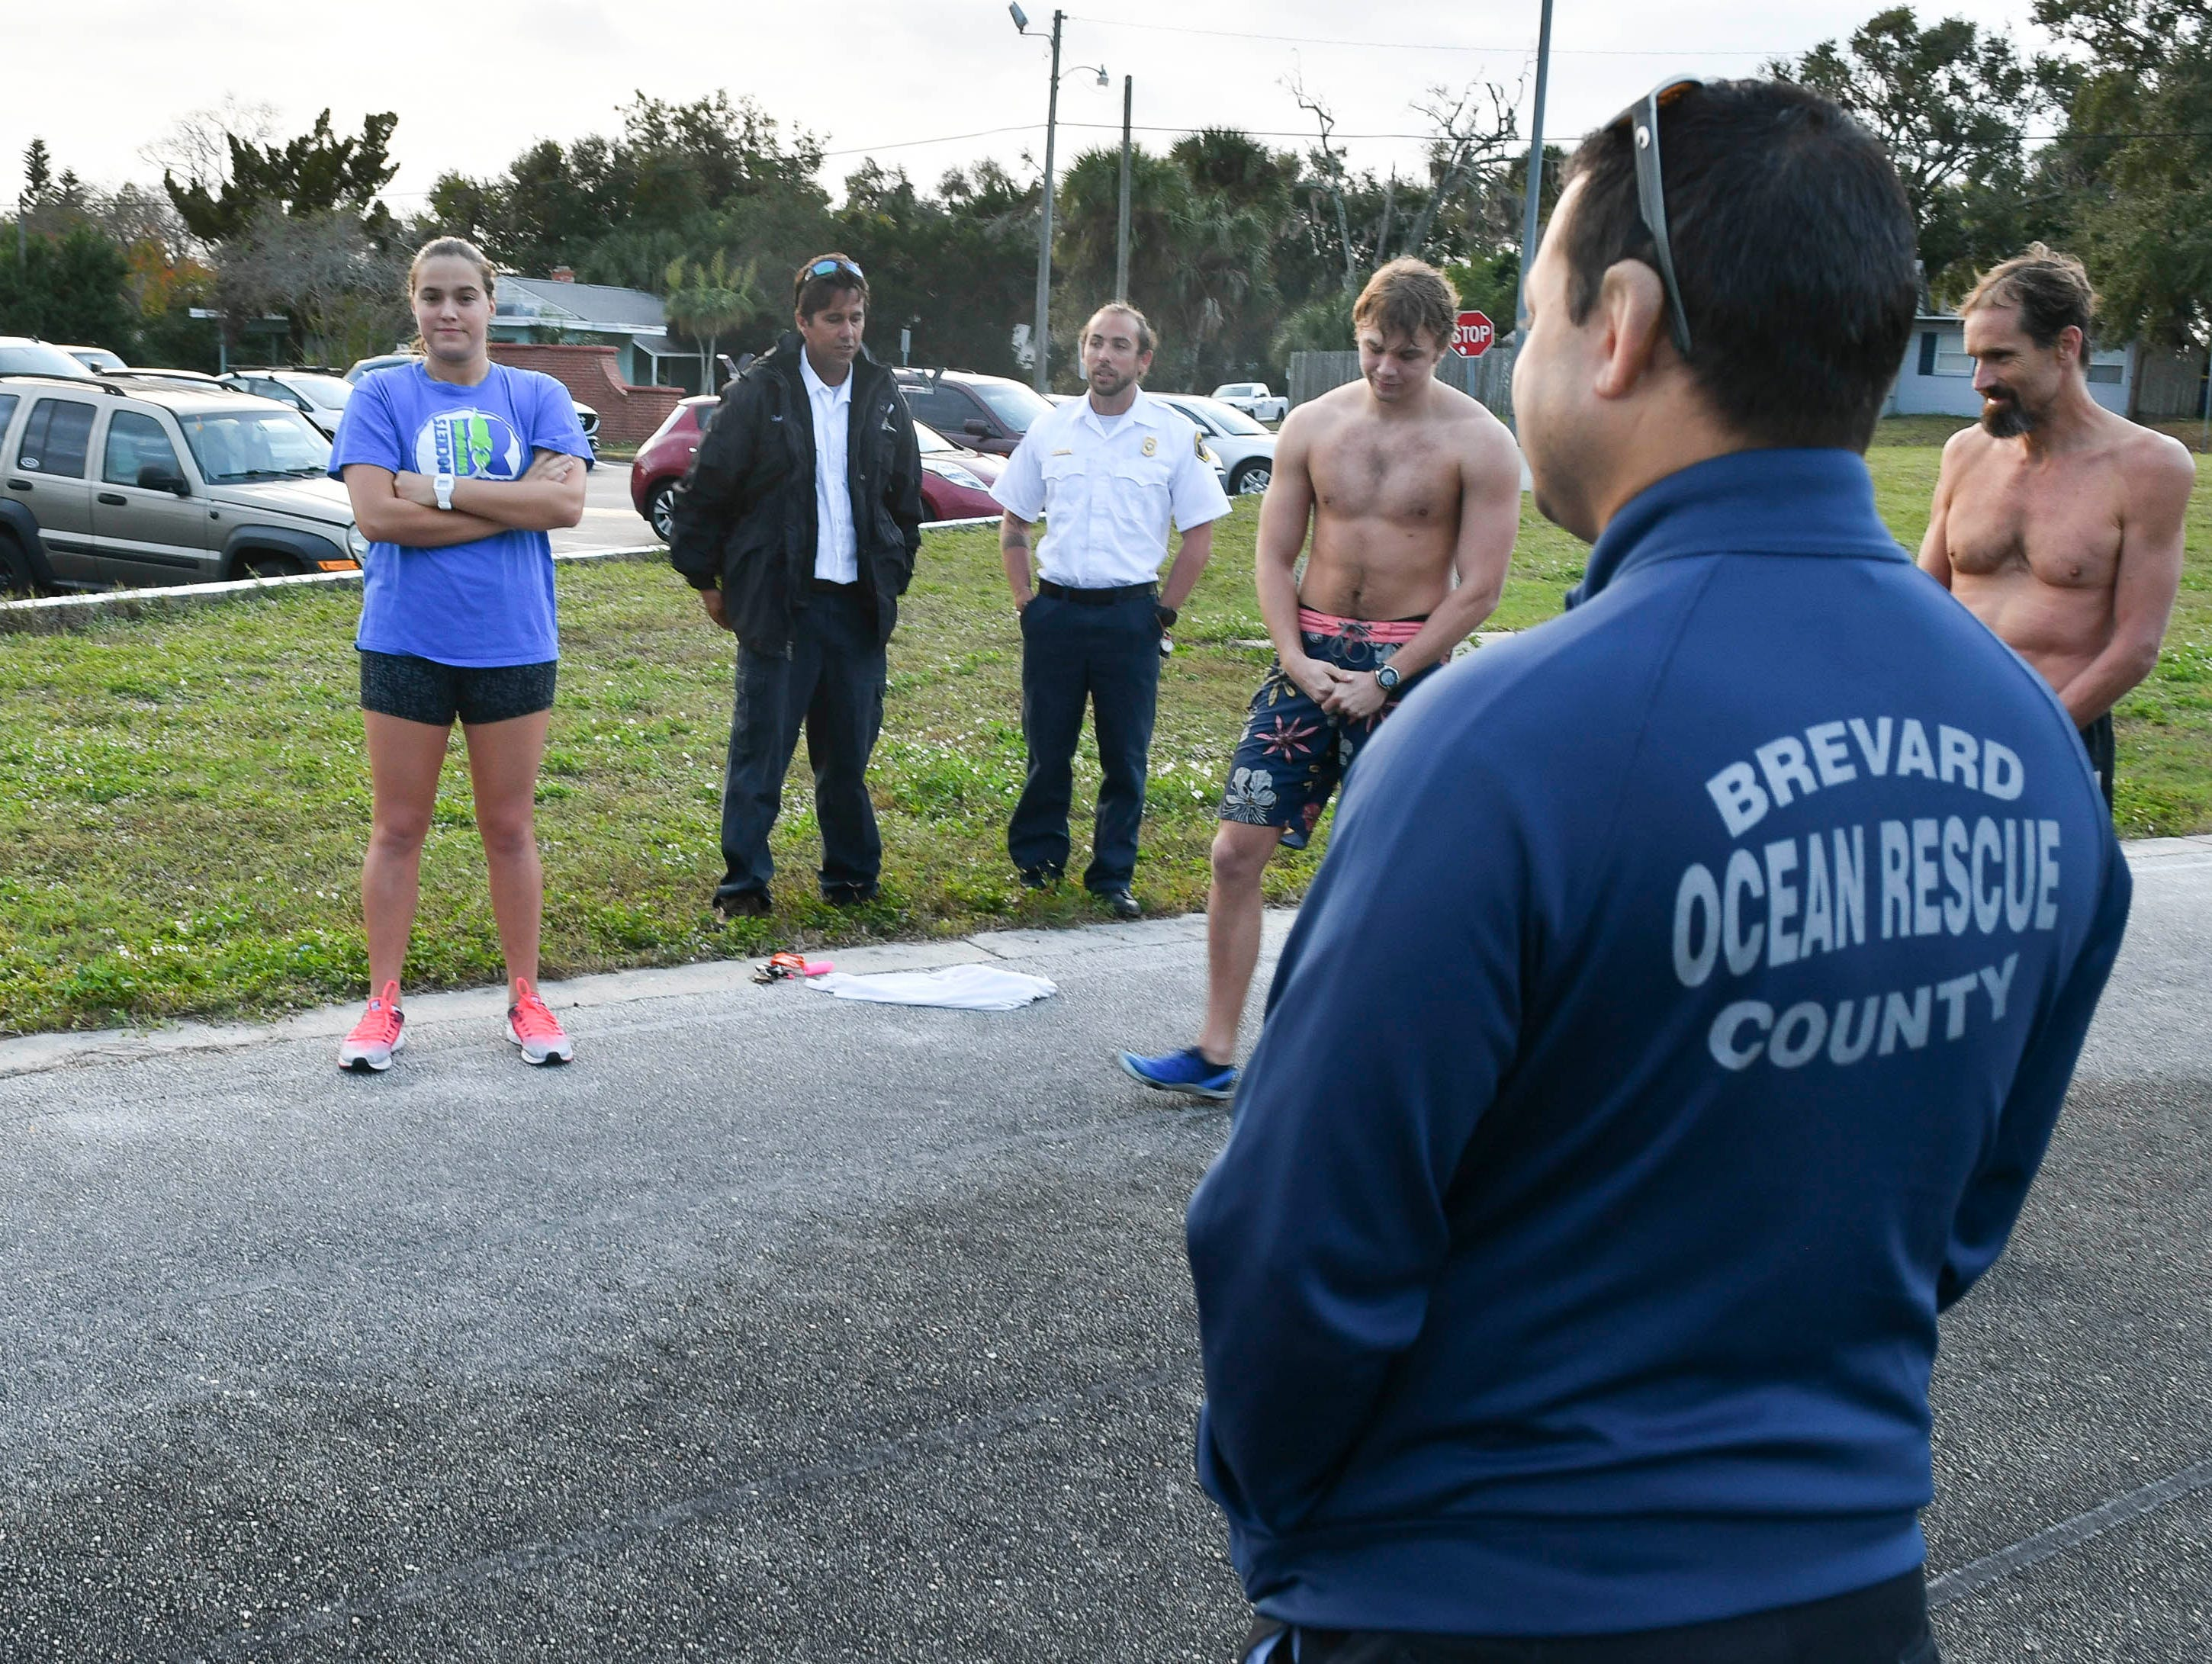 Eisen Witcher, Brevard County Ocean Rescue Chief speaks with applicants for ocean lifeguard positions prior to their physical evaluation at Rockledge High School early Saturday morning.